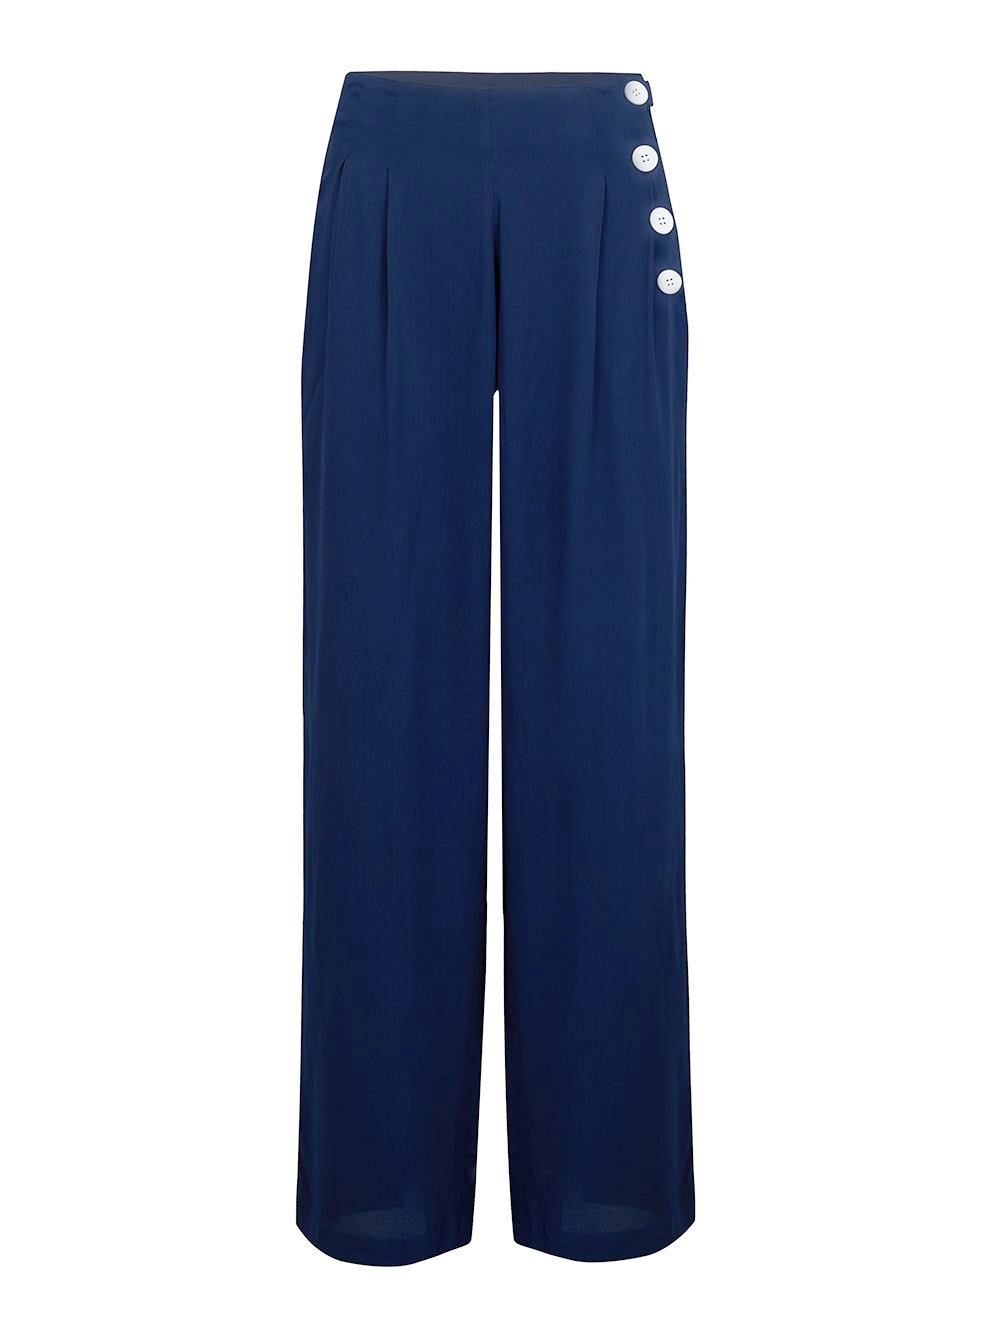 """Audrey"" Trousers  in Navy Blue by The Seamstress of Bloomsbury, Classic 1940s Vintage Inspired Style"